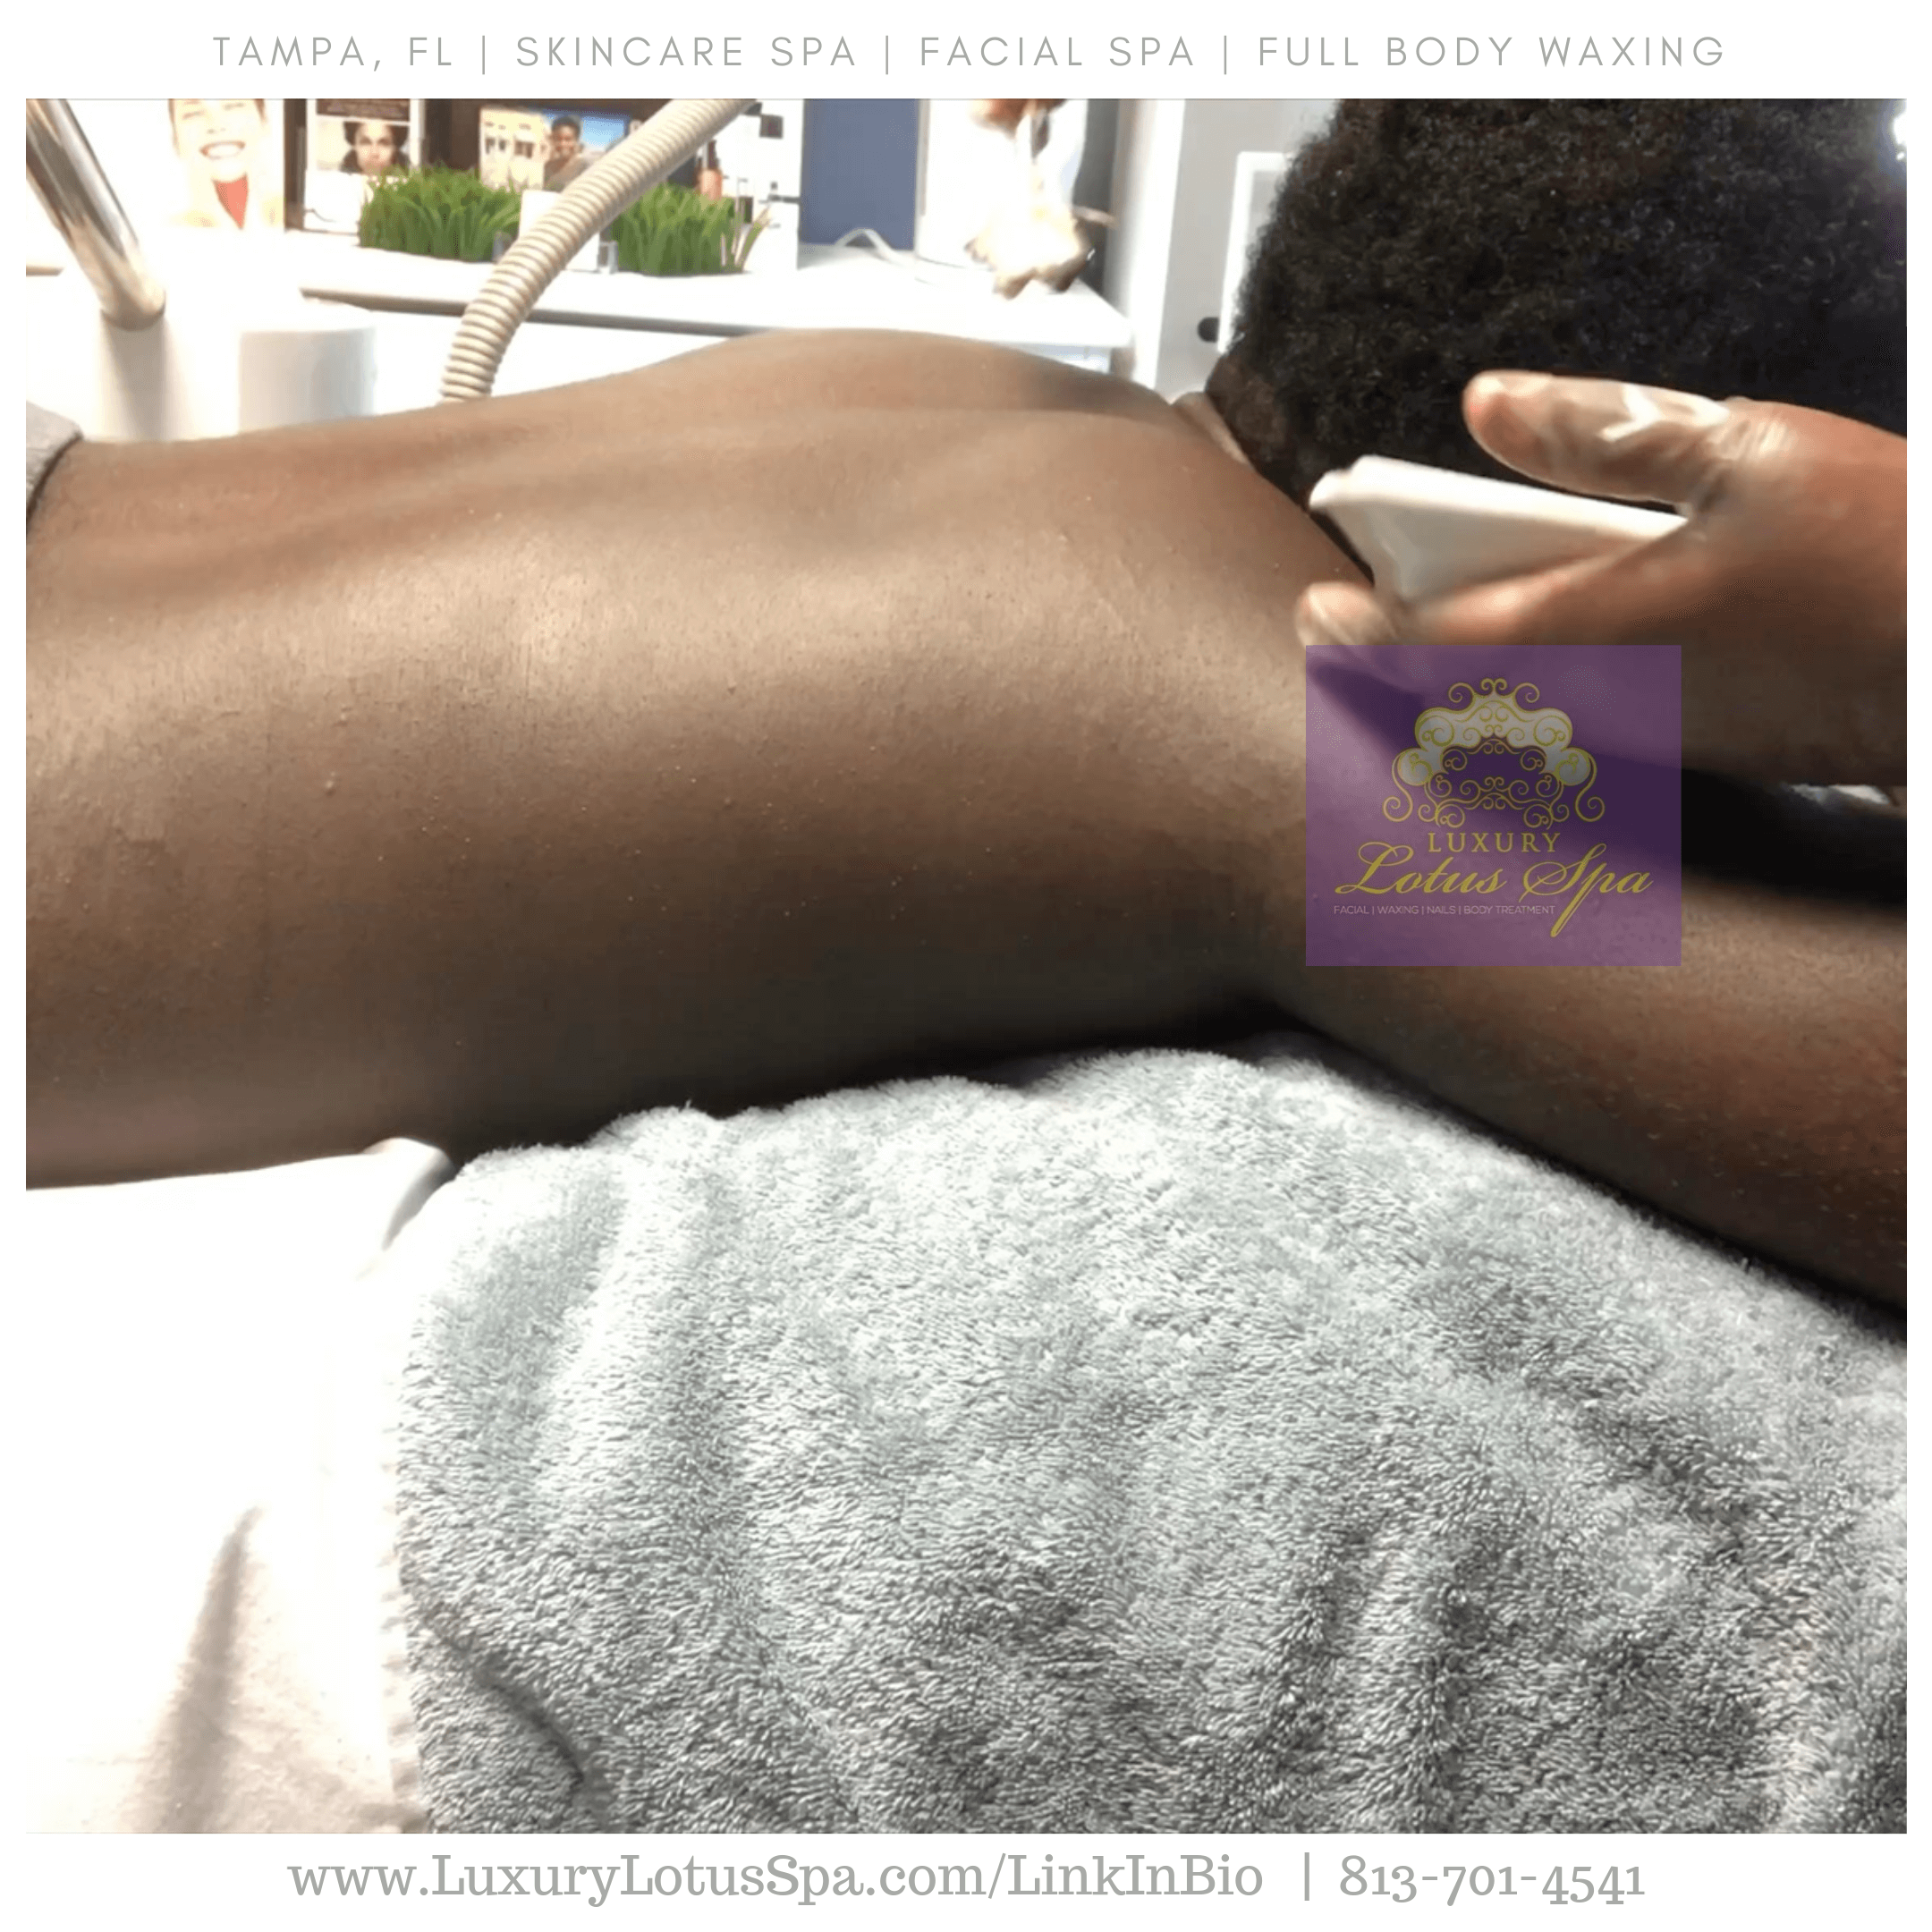 FULL BODY WAXING TREATMENT tampa